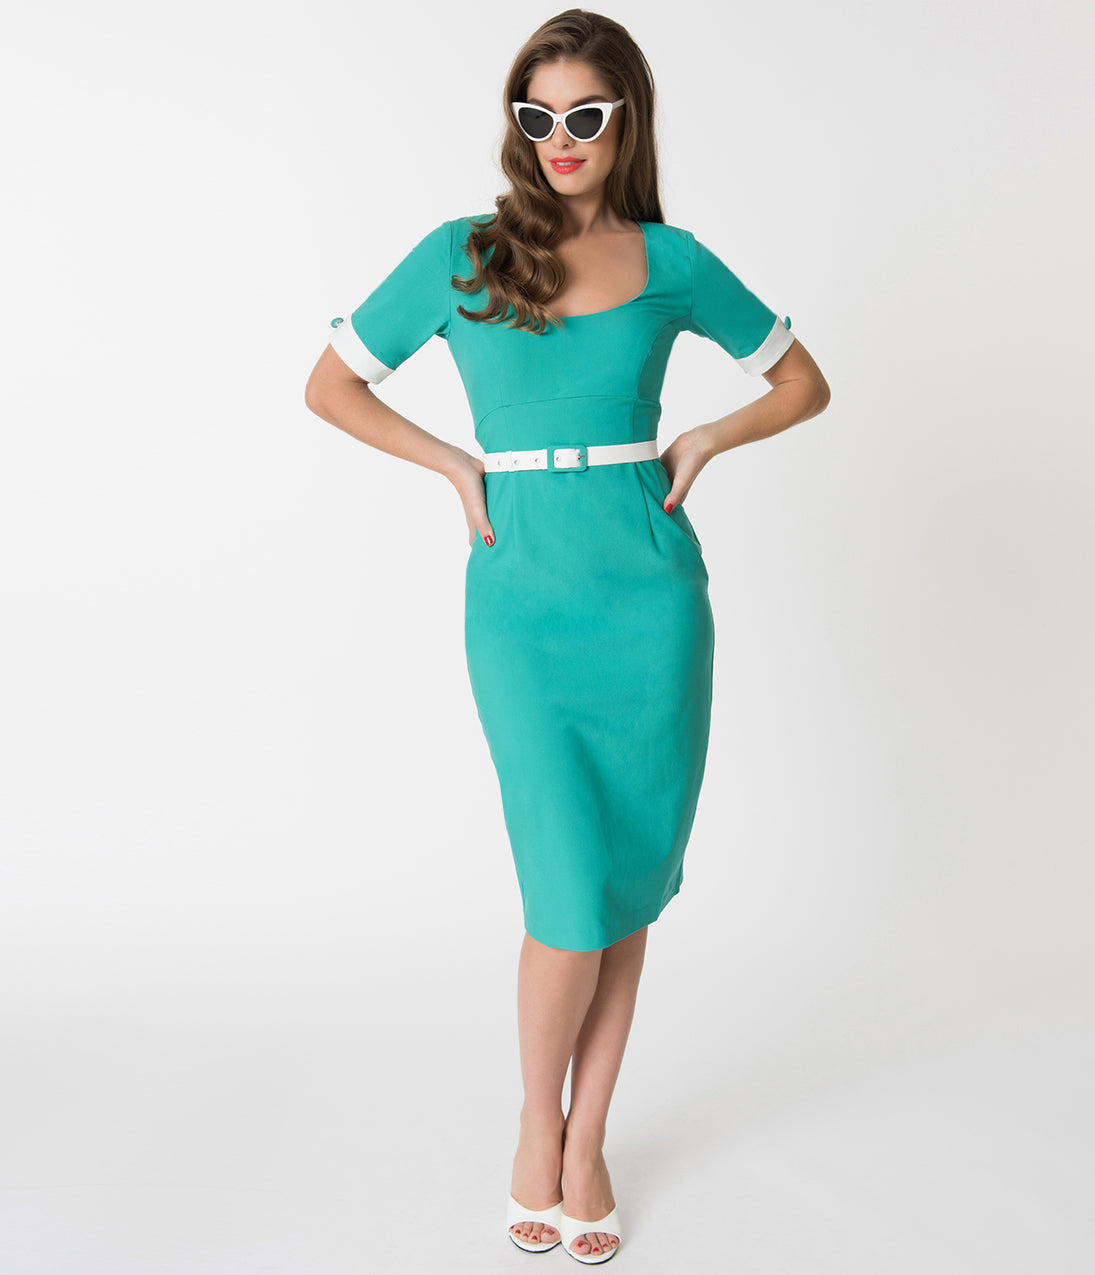 500 Vintage Style Dresses for Sale Glamour Bunny Turquoise Green  White Annie Pencil Dress $132.00 AT vintagedancer.com